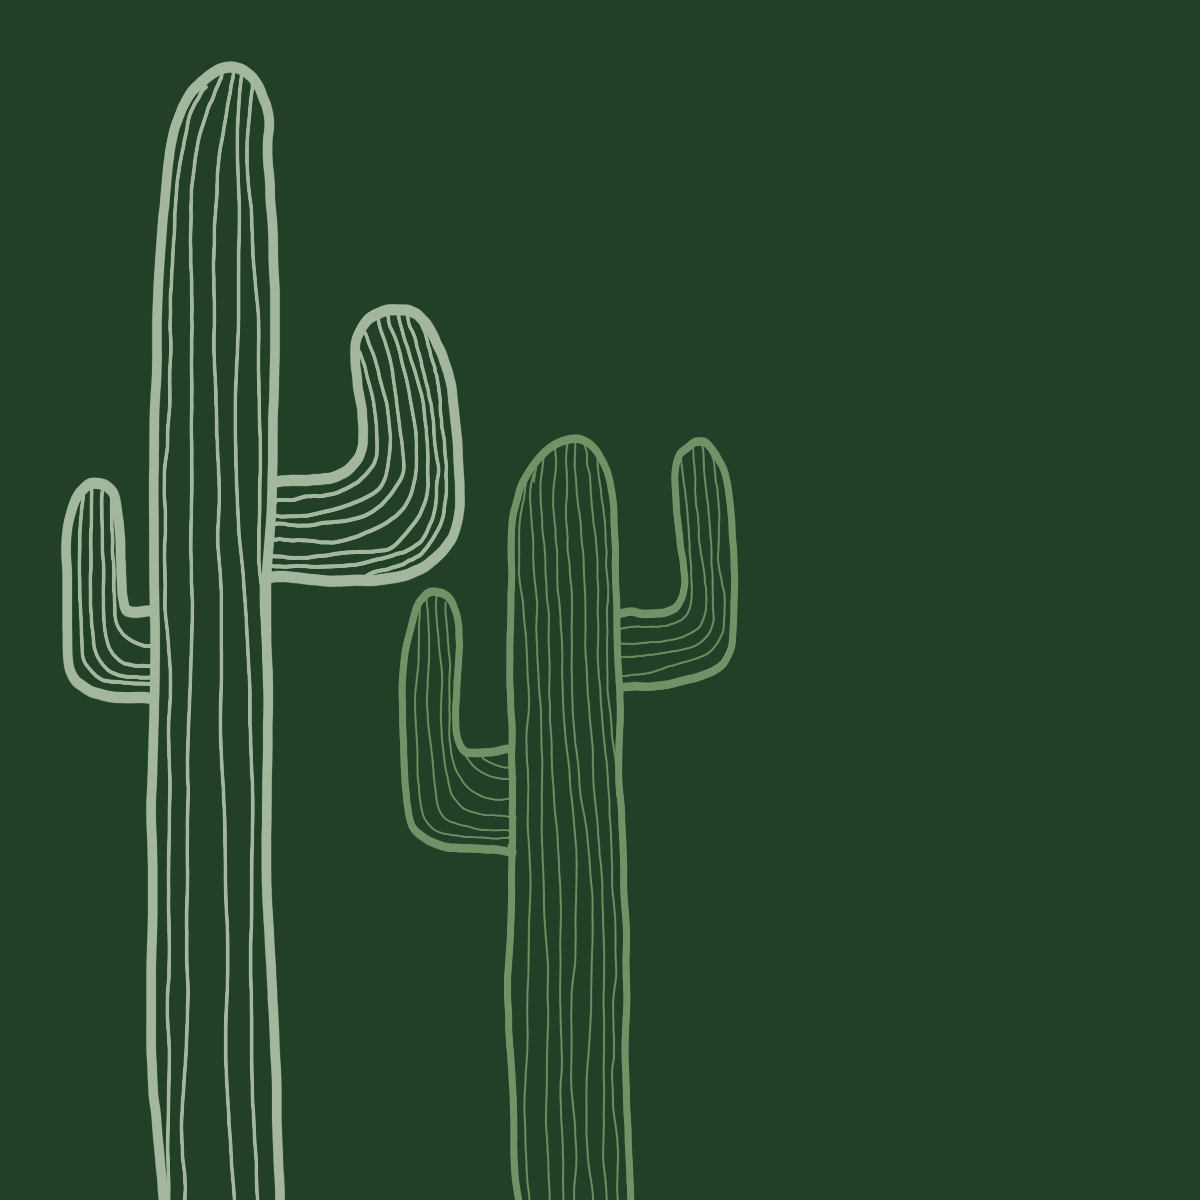 The Green Cactus Brothers